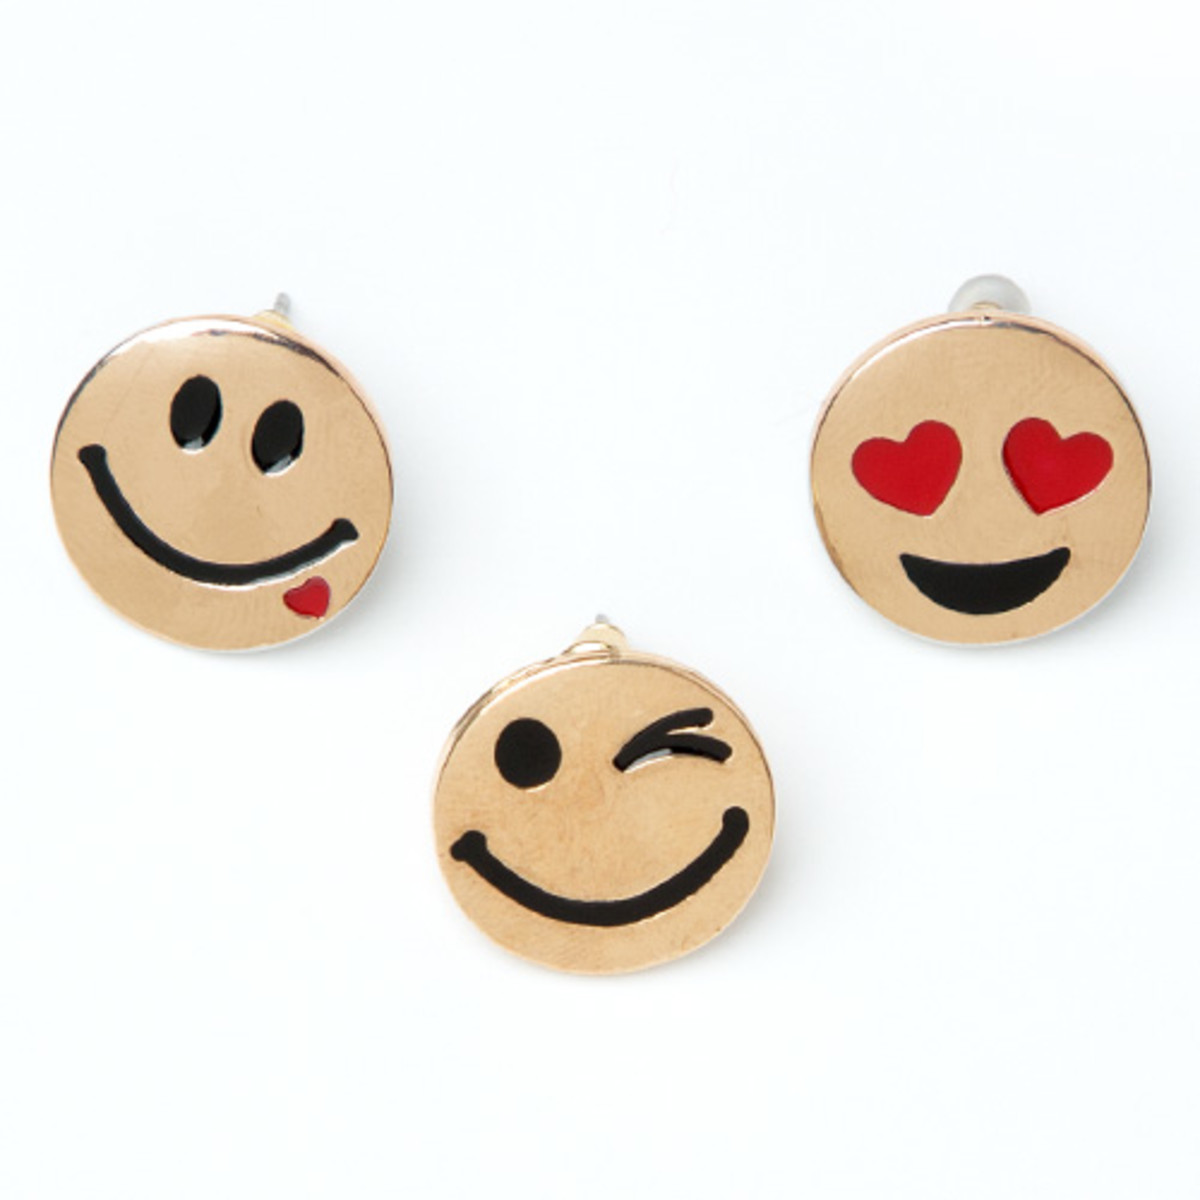 awesome stocking stuffers Little Miss Matched emoji earrings